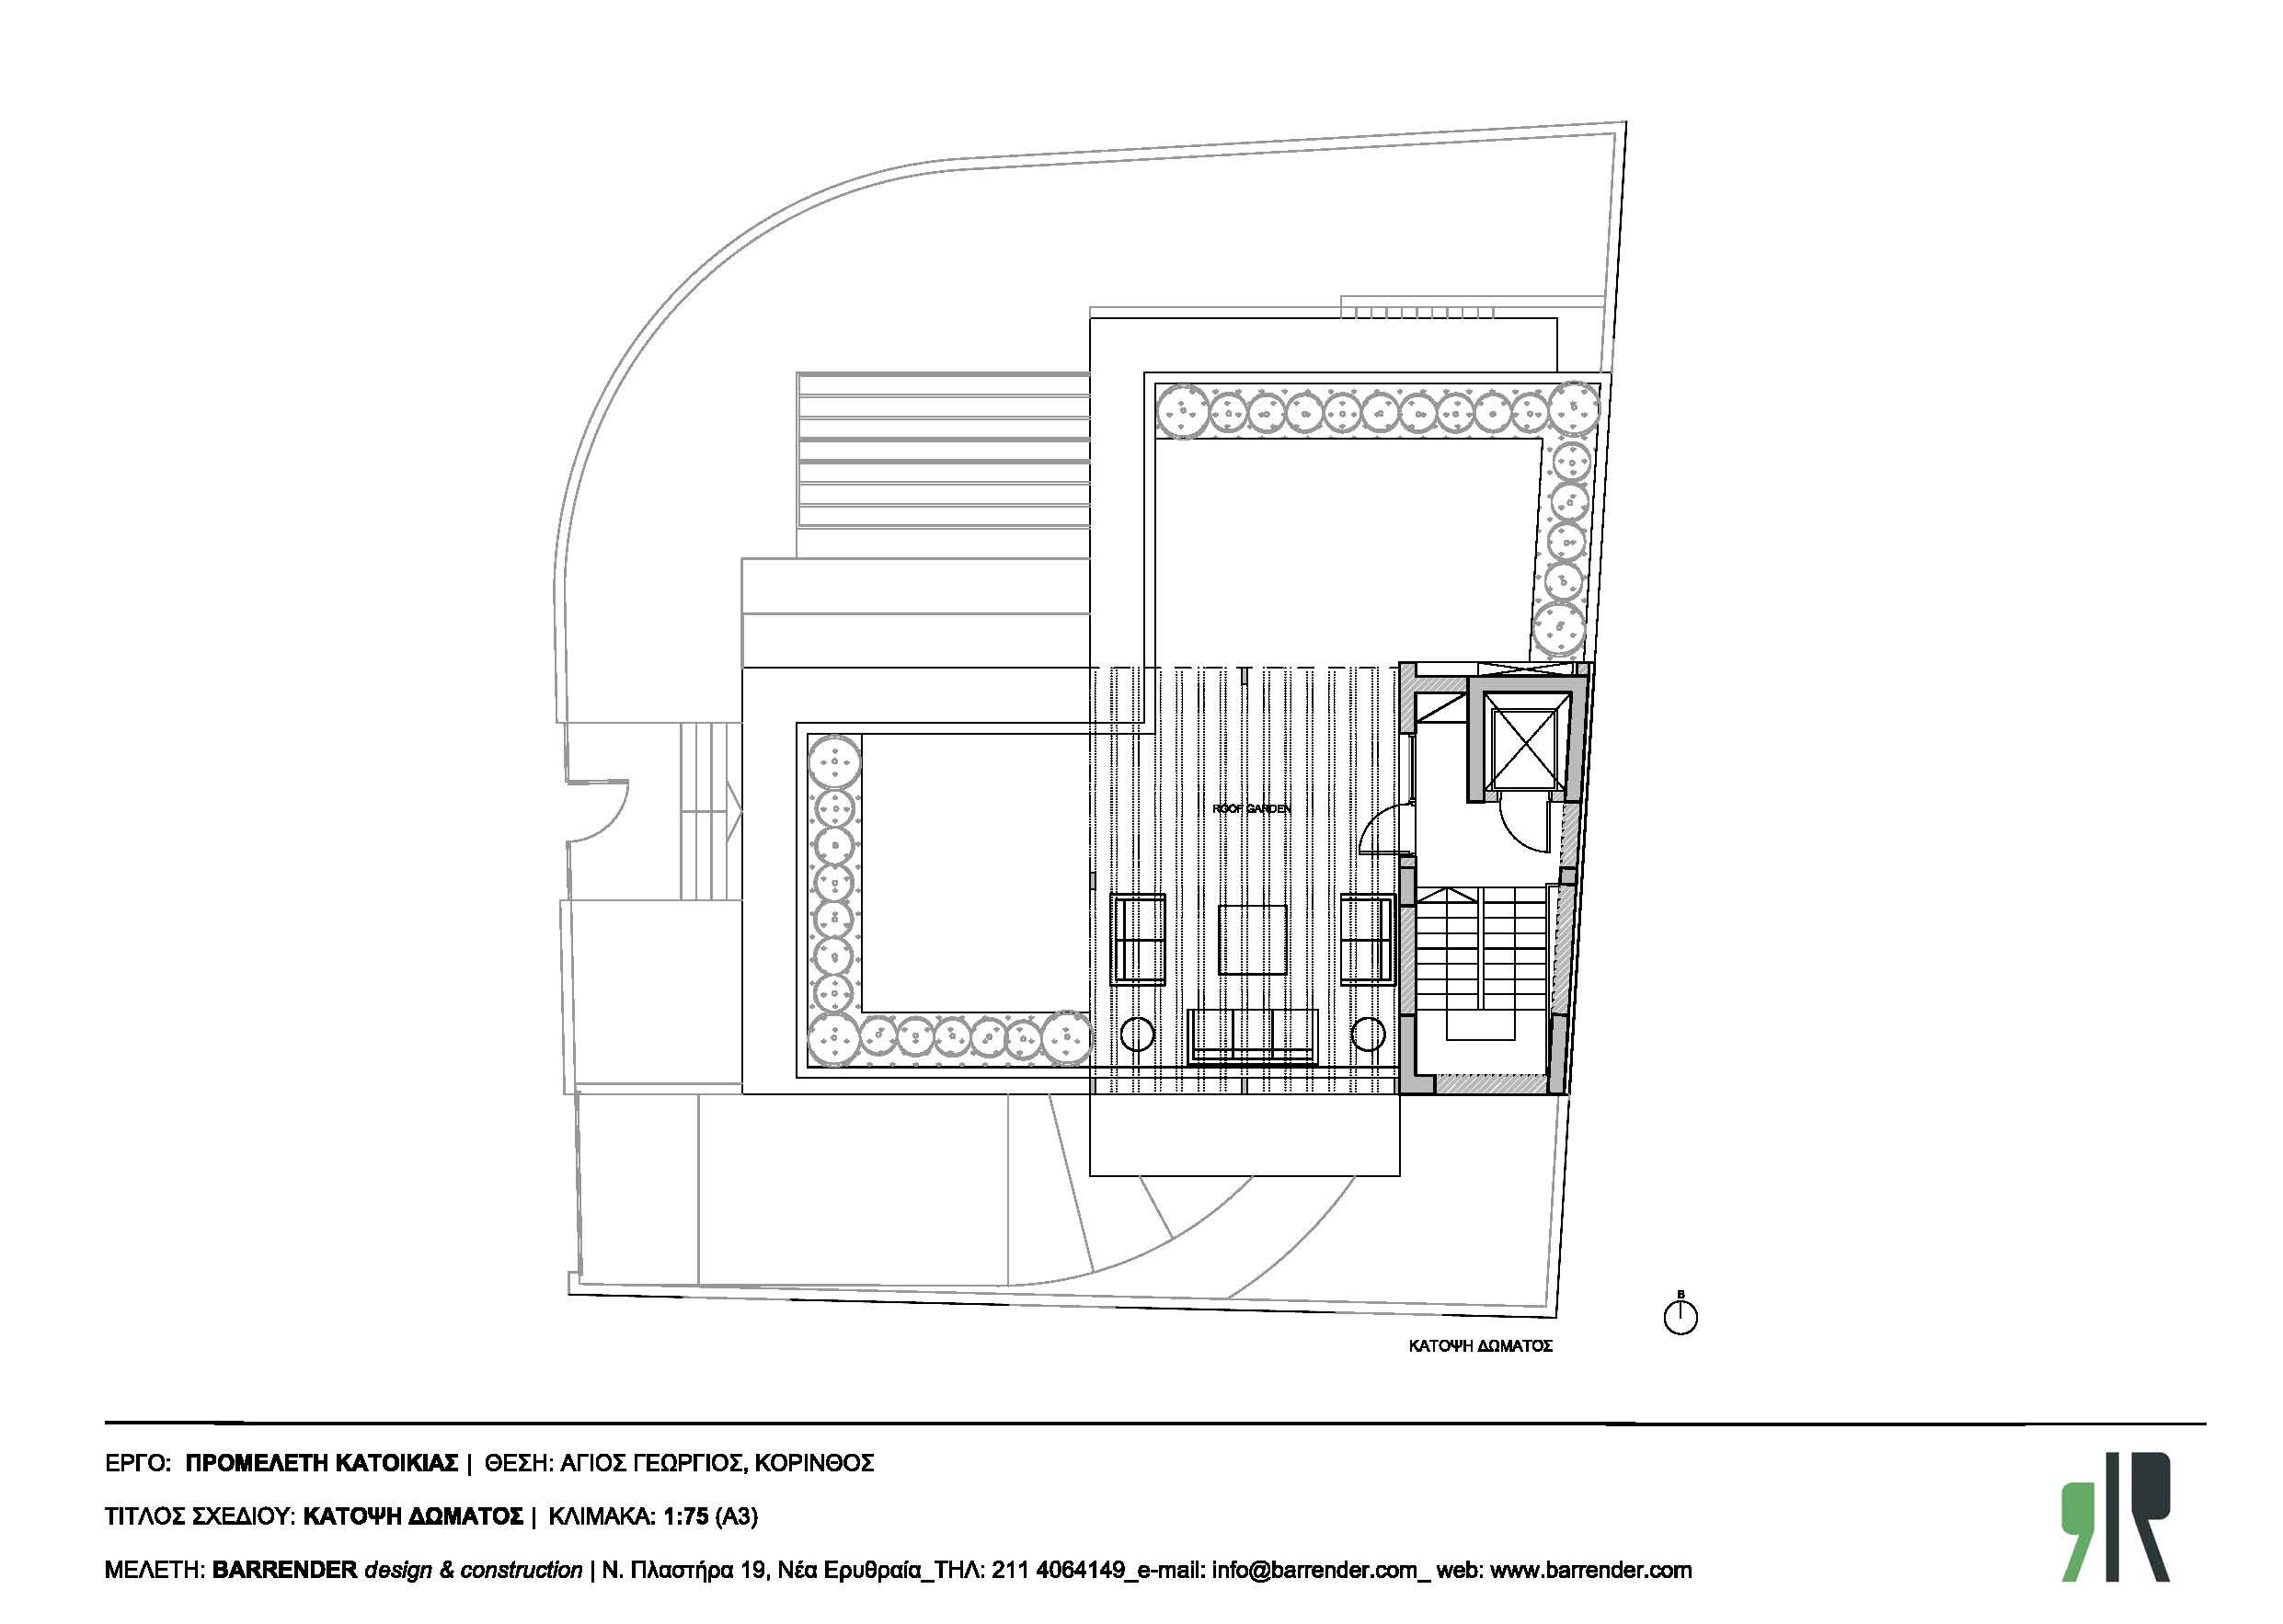 Roof level layout plan